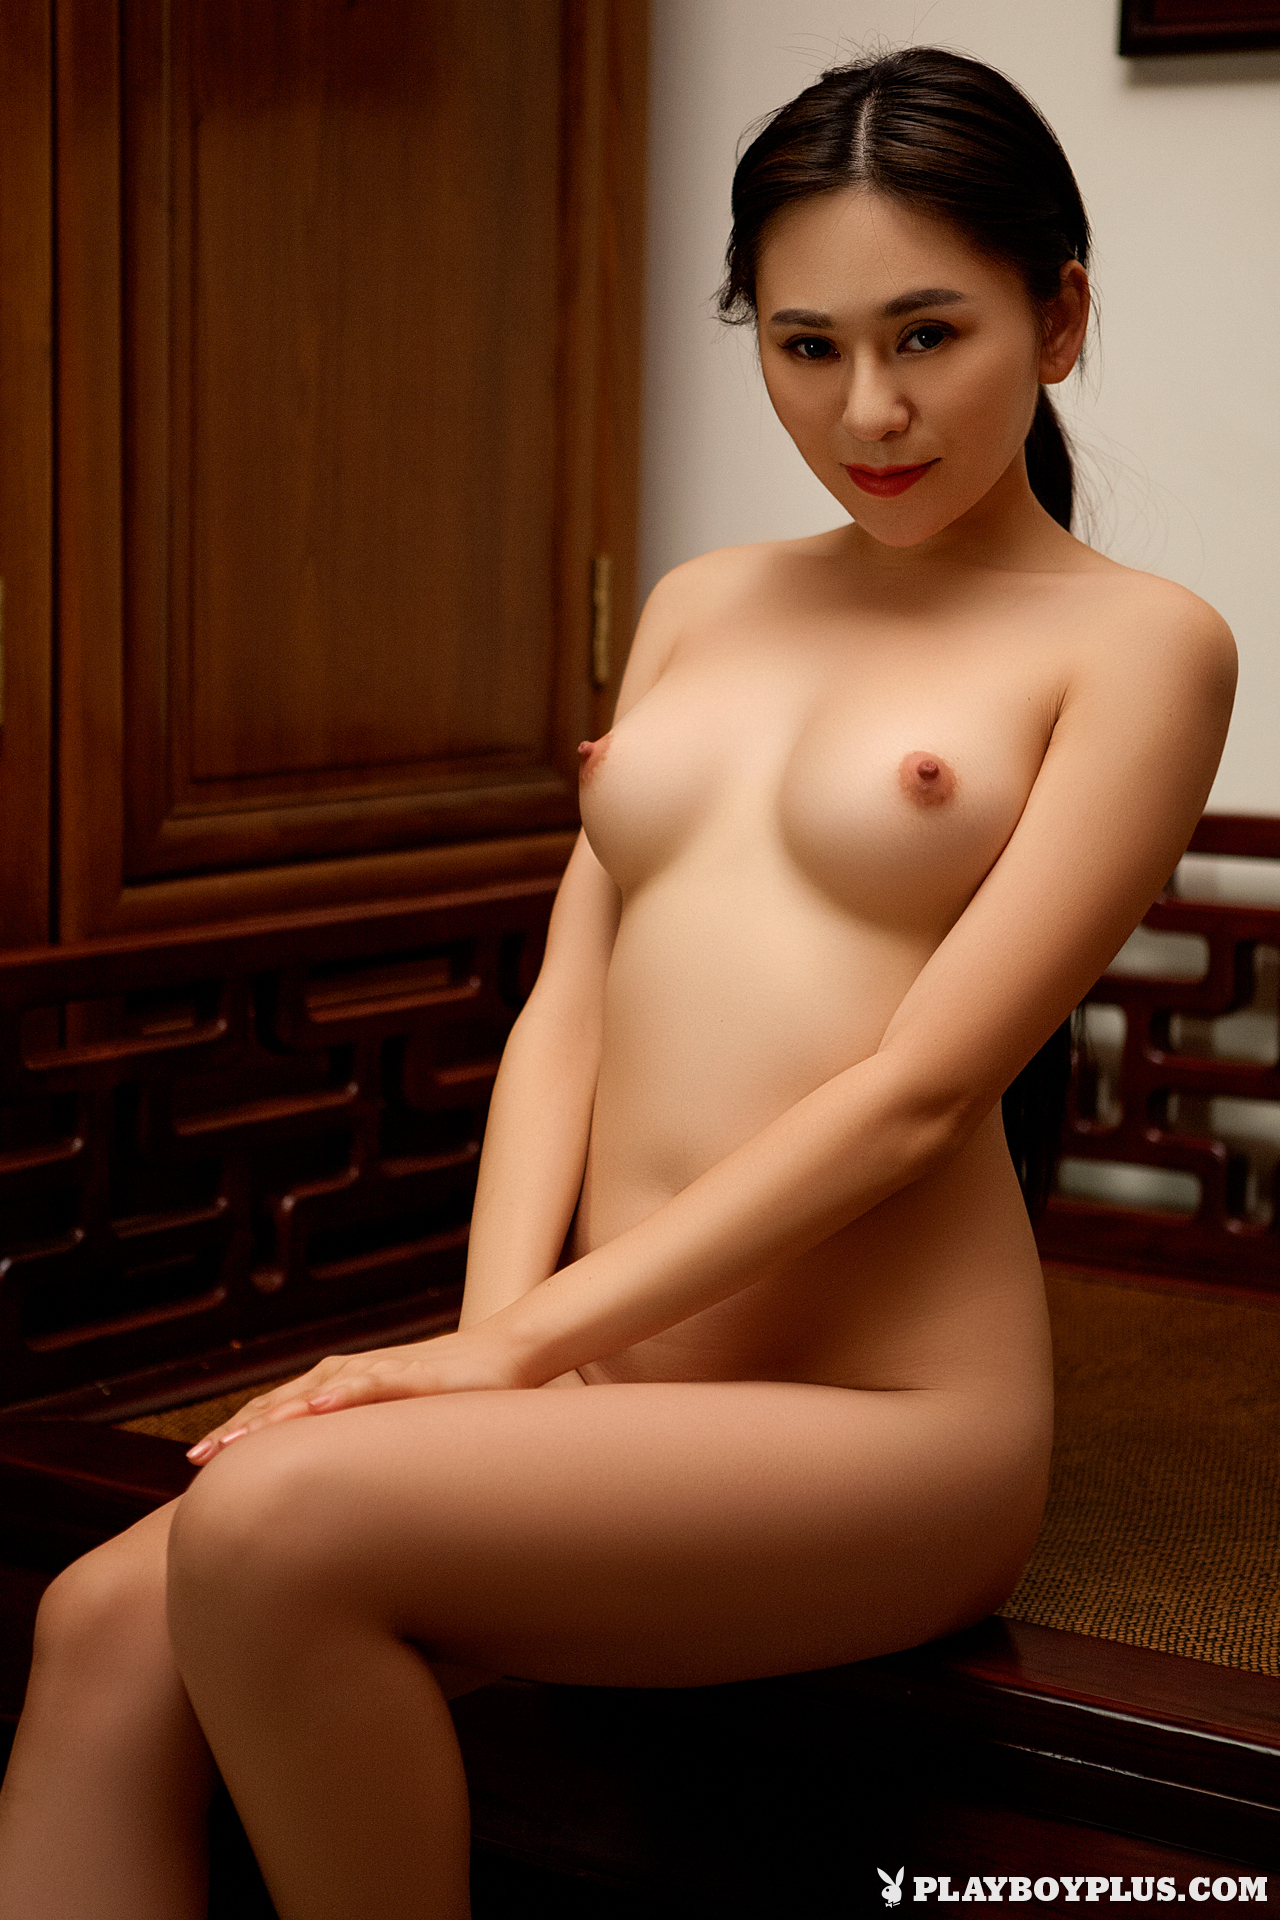 Variants are Constance wu naked